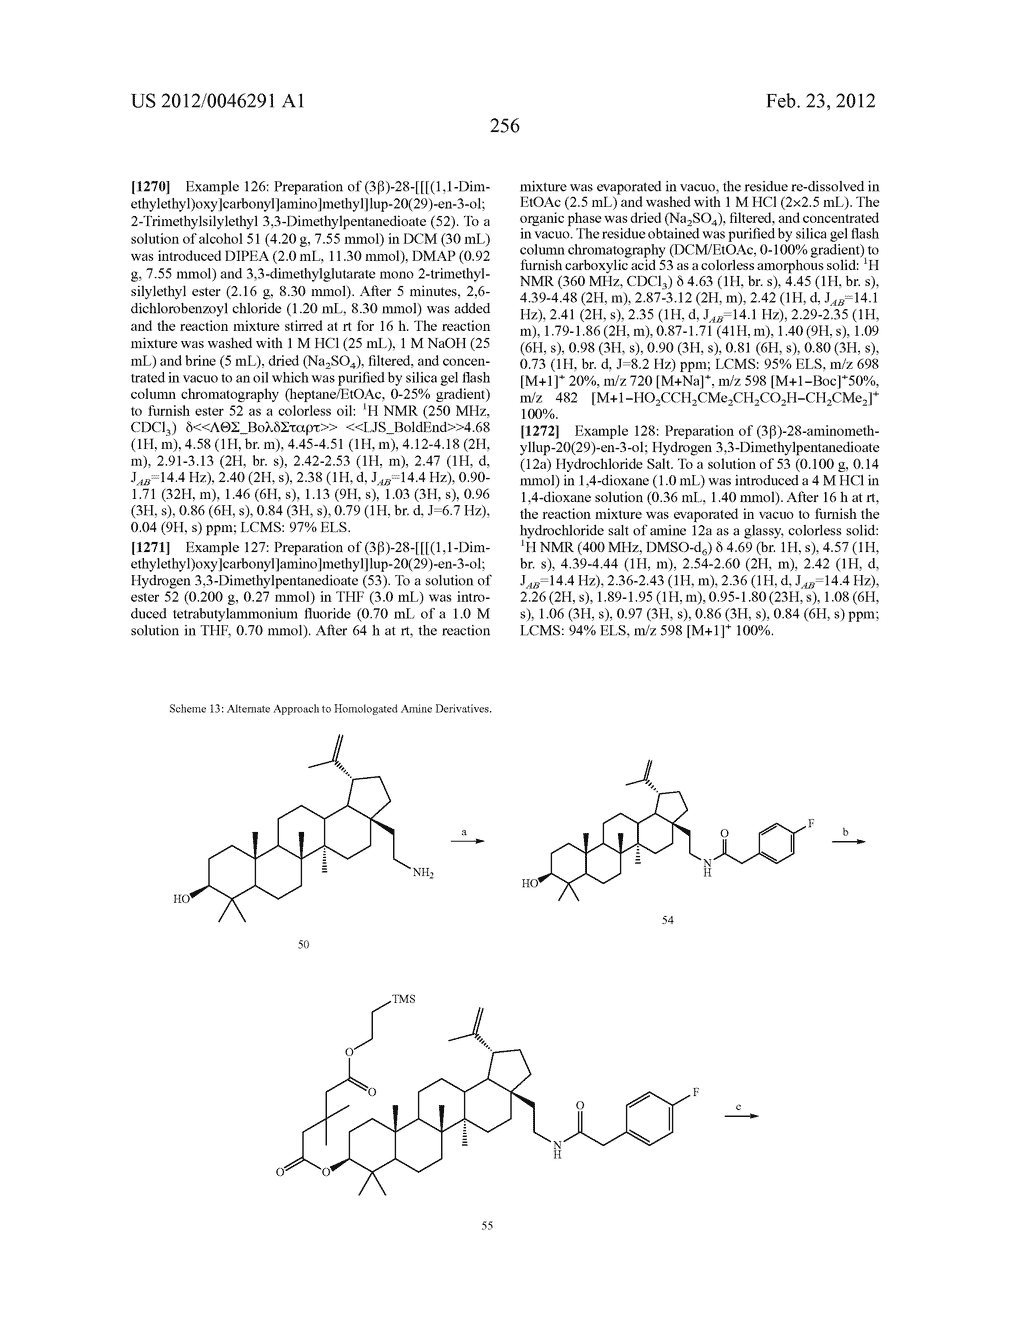 Extended Triterpene Derivatives - diagram, schematic, and image 256